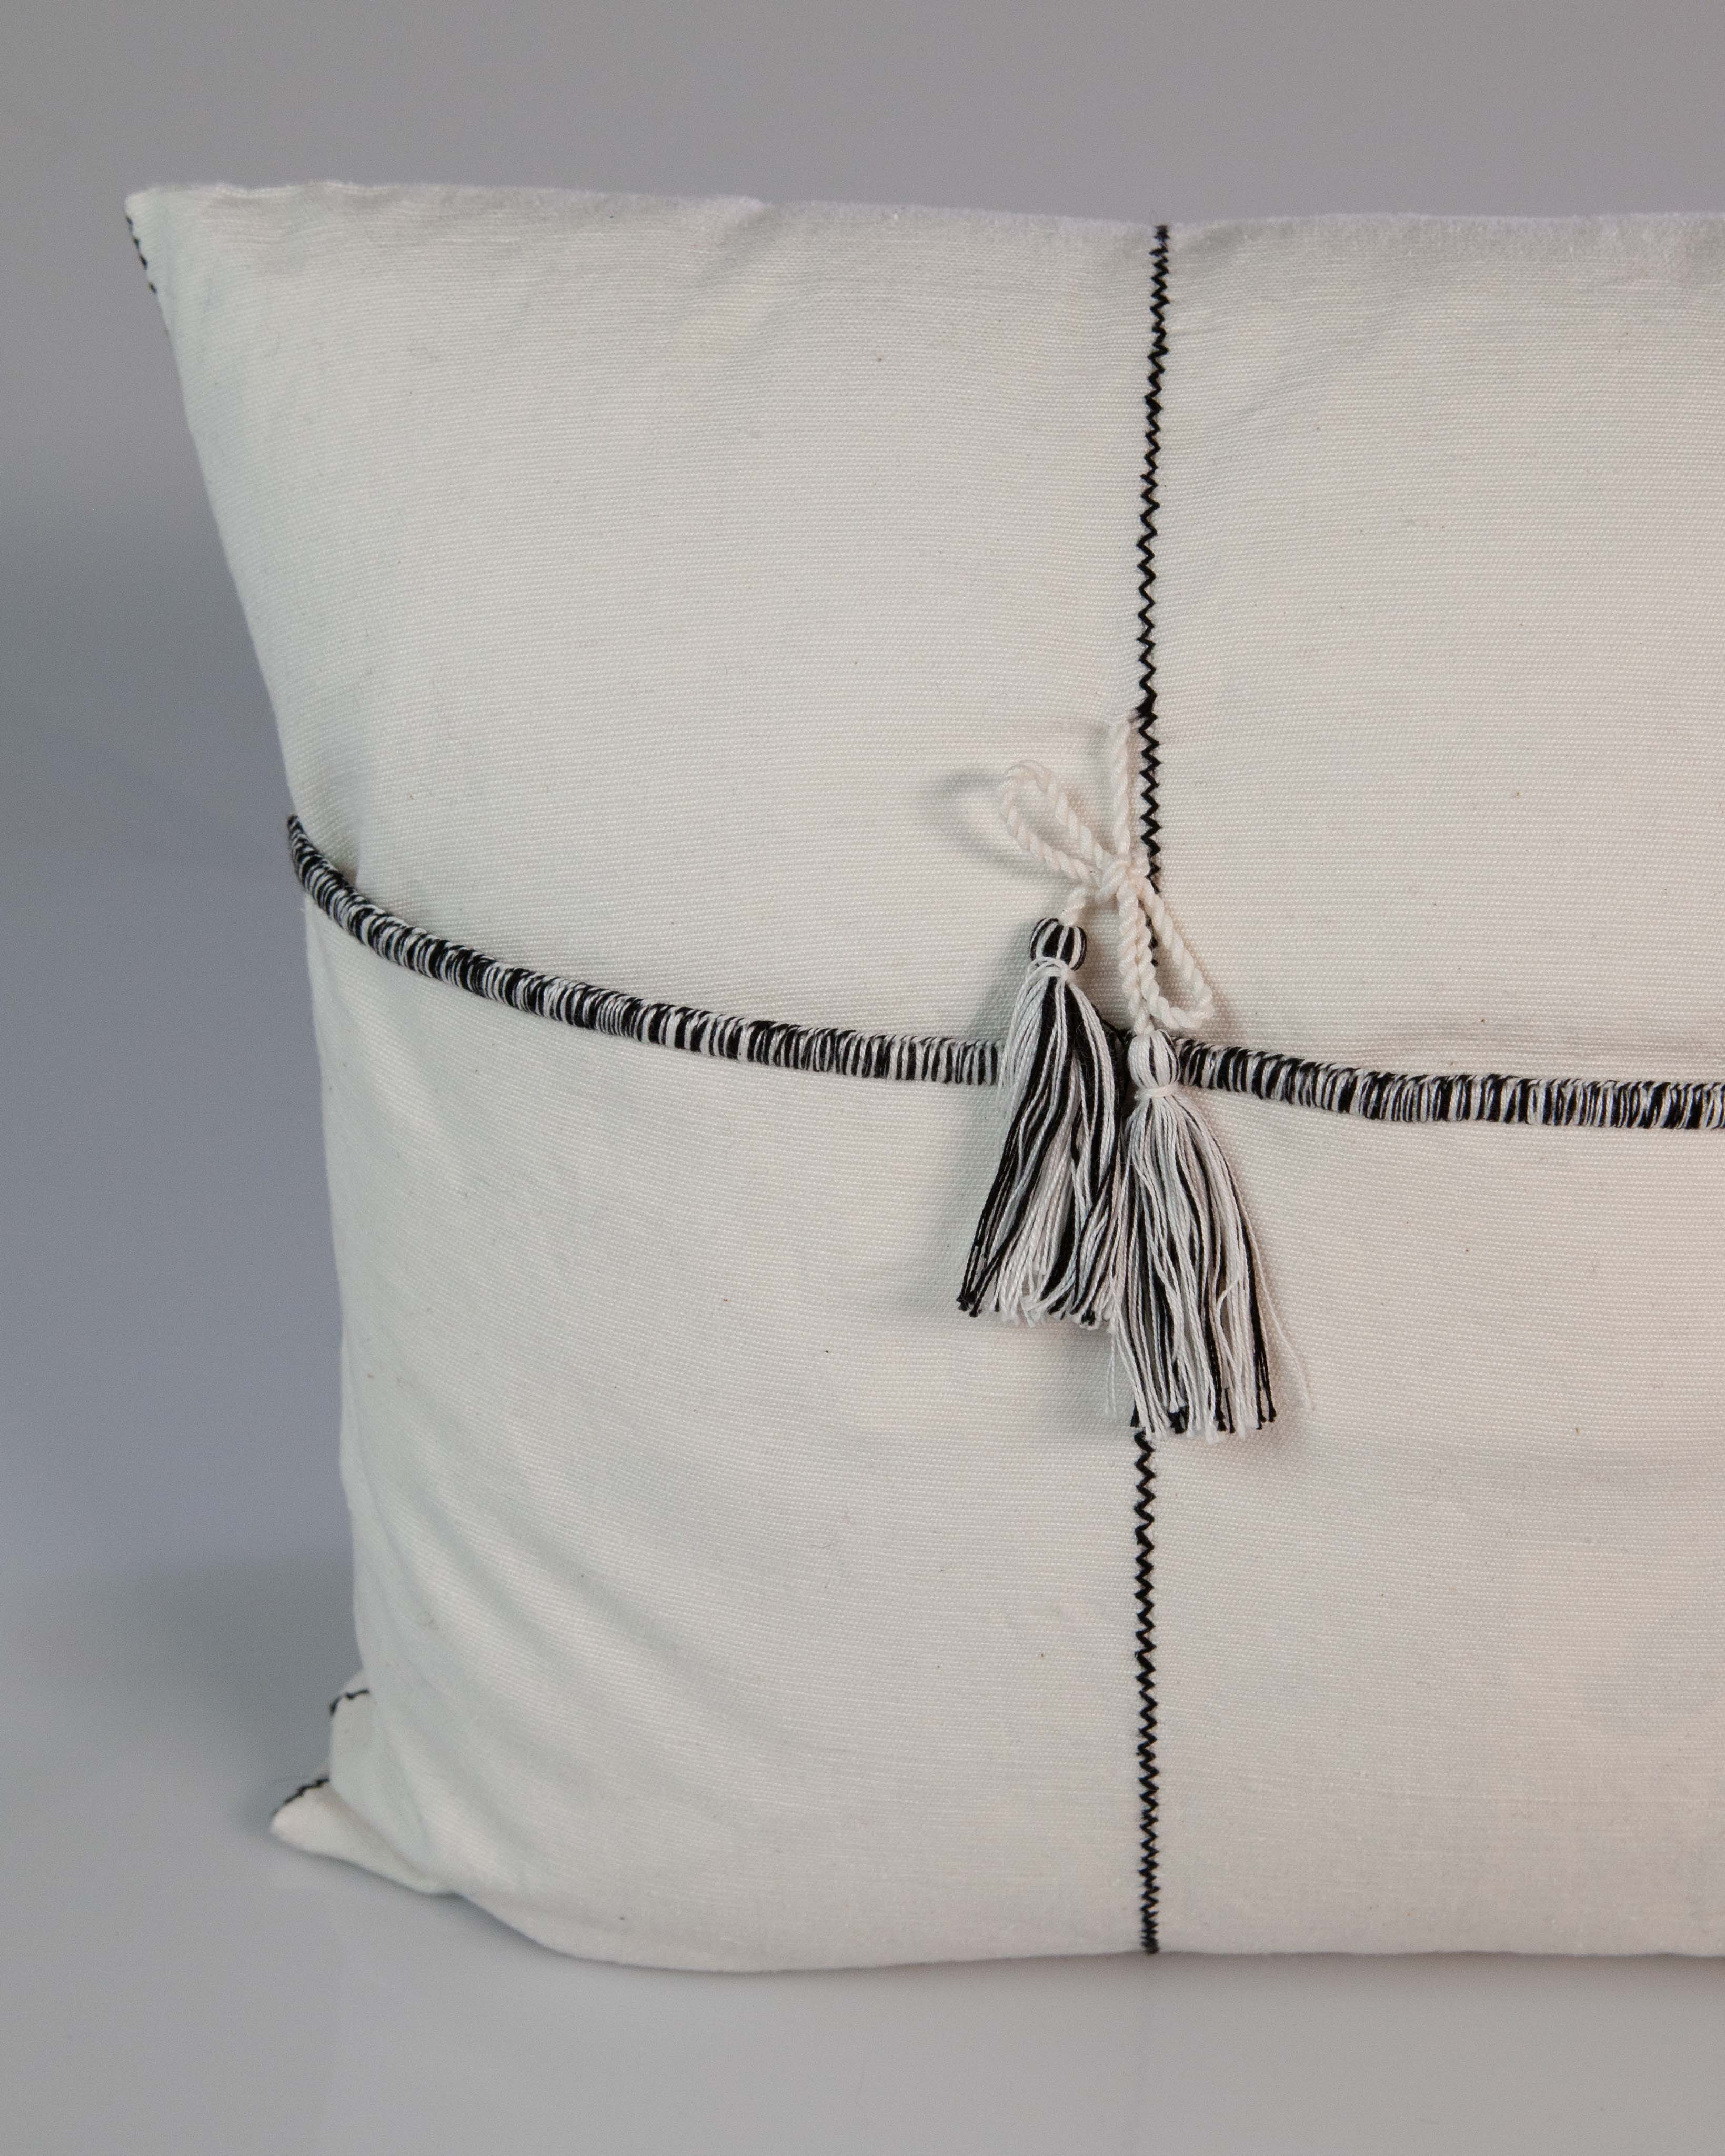 Ojo de Dios Handwoven Cotton Pillow in Black and White